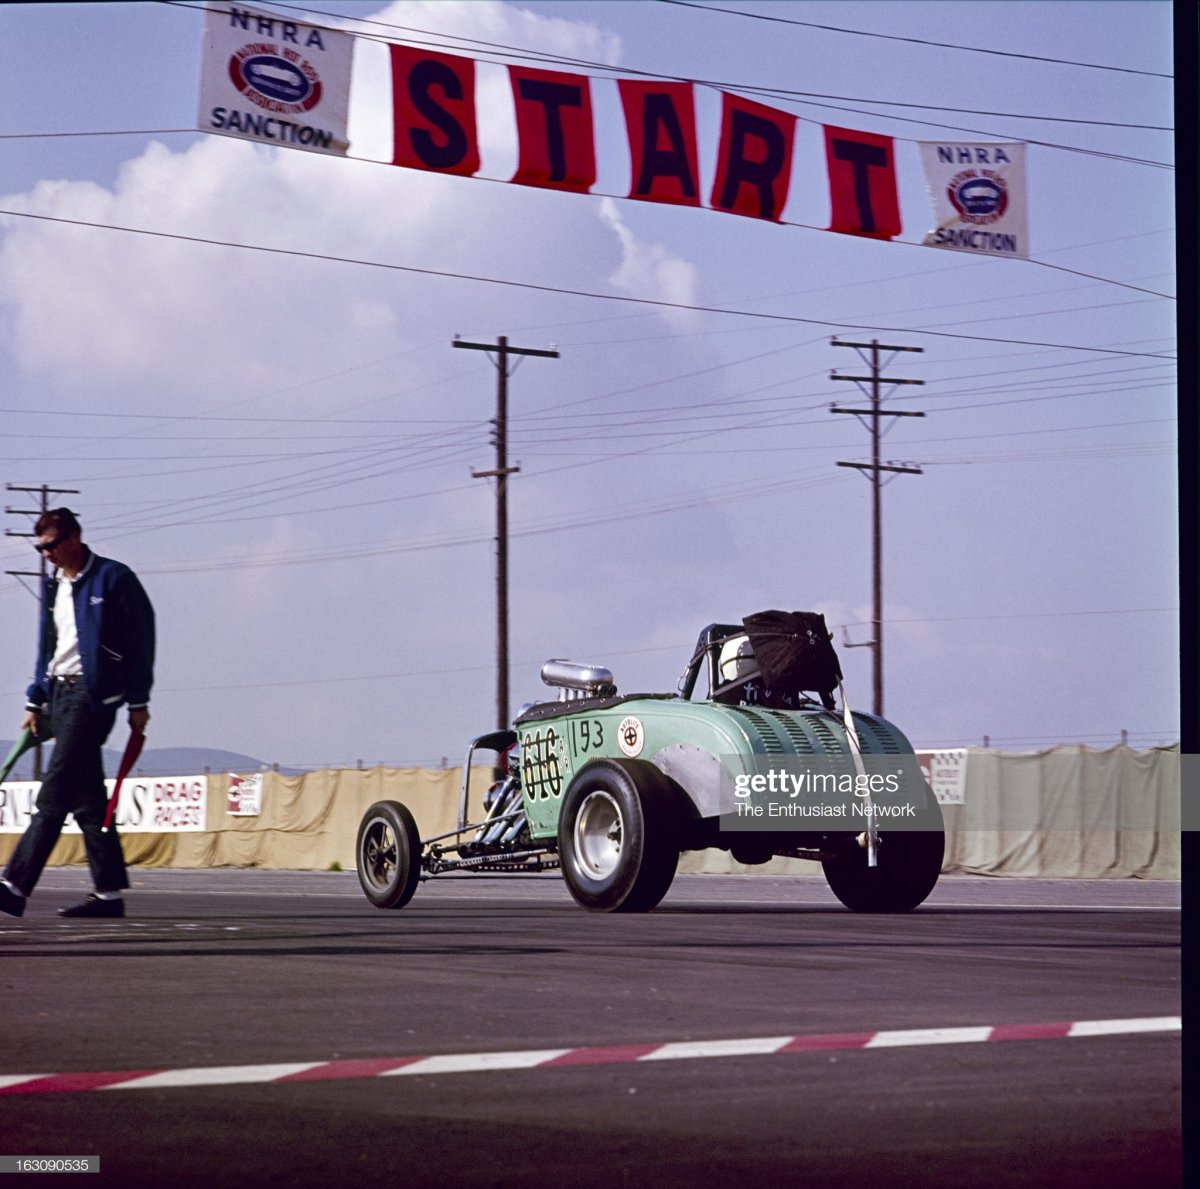 62 1962 NHRA Winternationals Drag Race..jpg